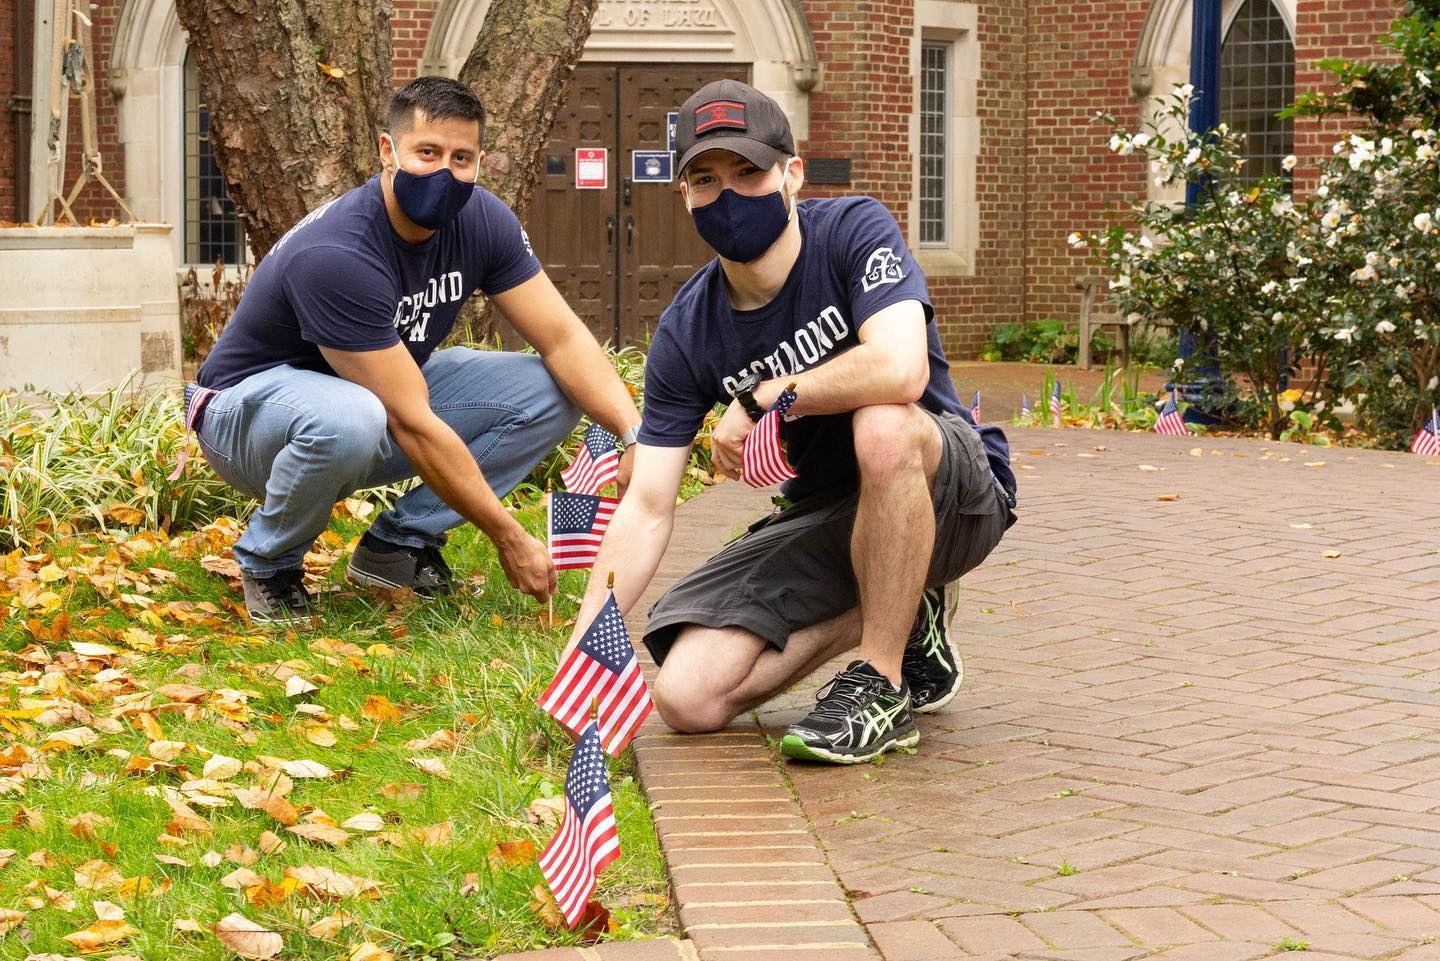 In honor of Veterans Day, #URichmond law students and members of the Veterans and Military Law Association placed 22 miniature flags lining the entrance of the law school. Each flag represents one current student or faculty member who served our country as a member of the armed forces.